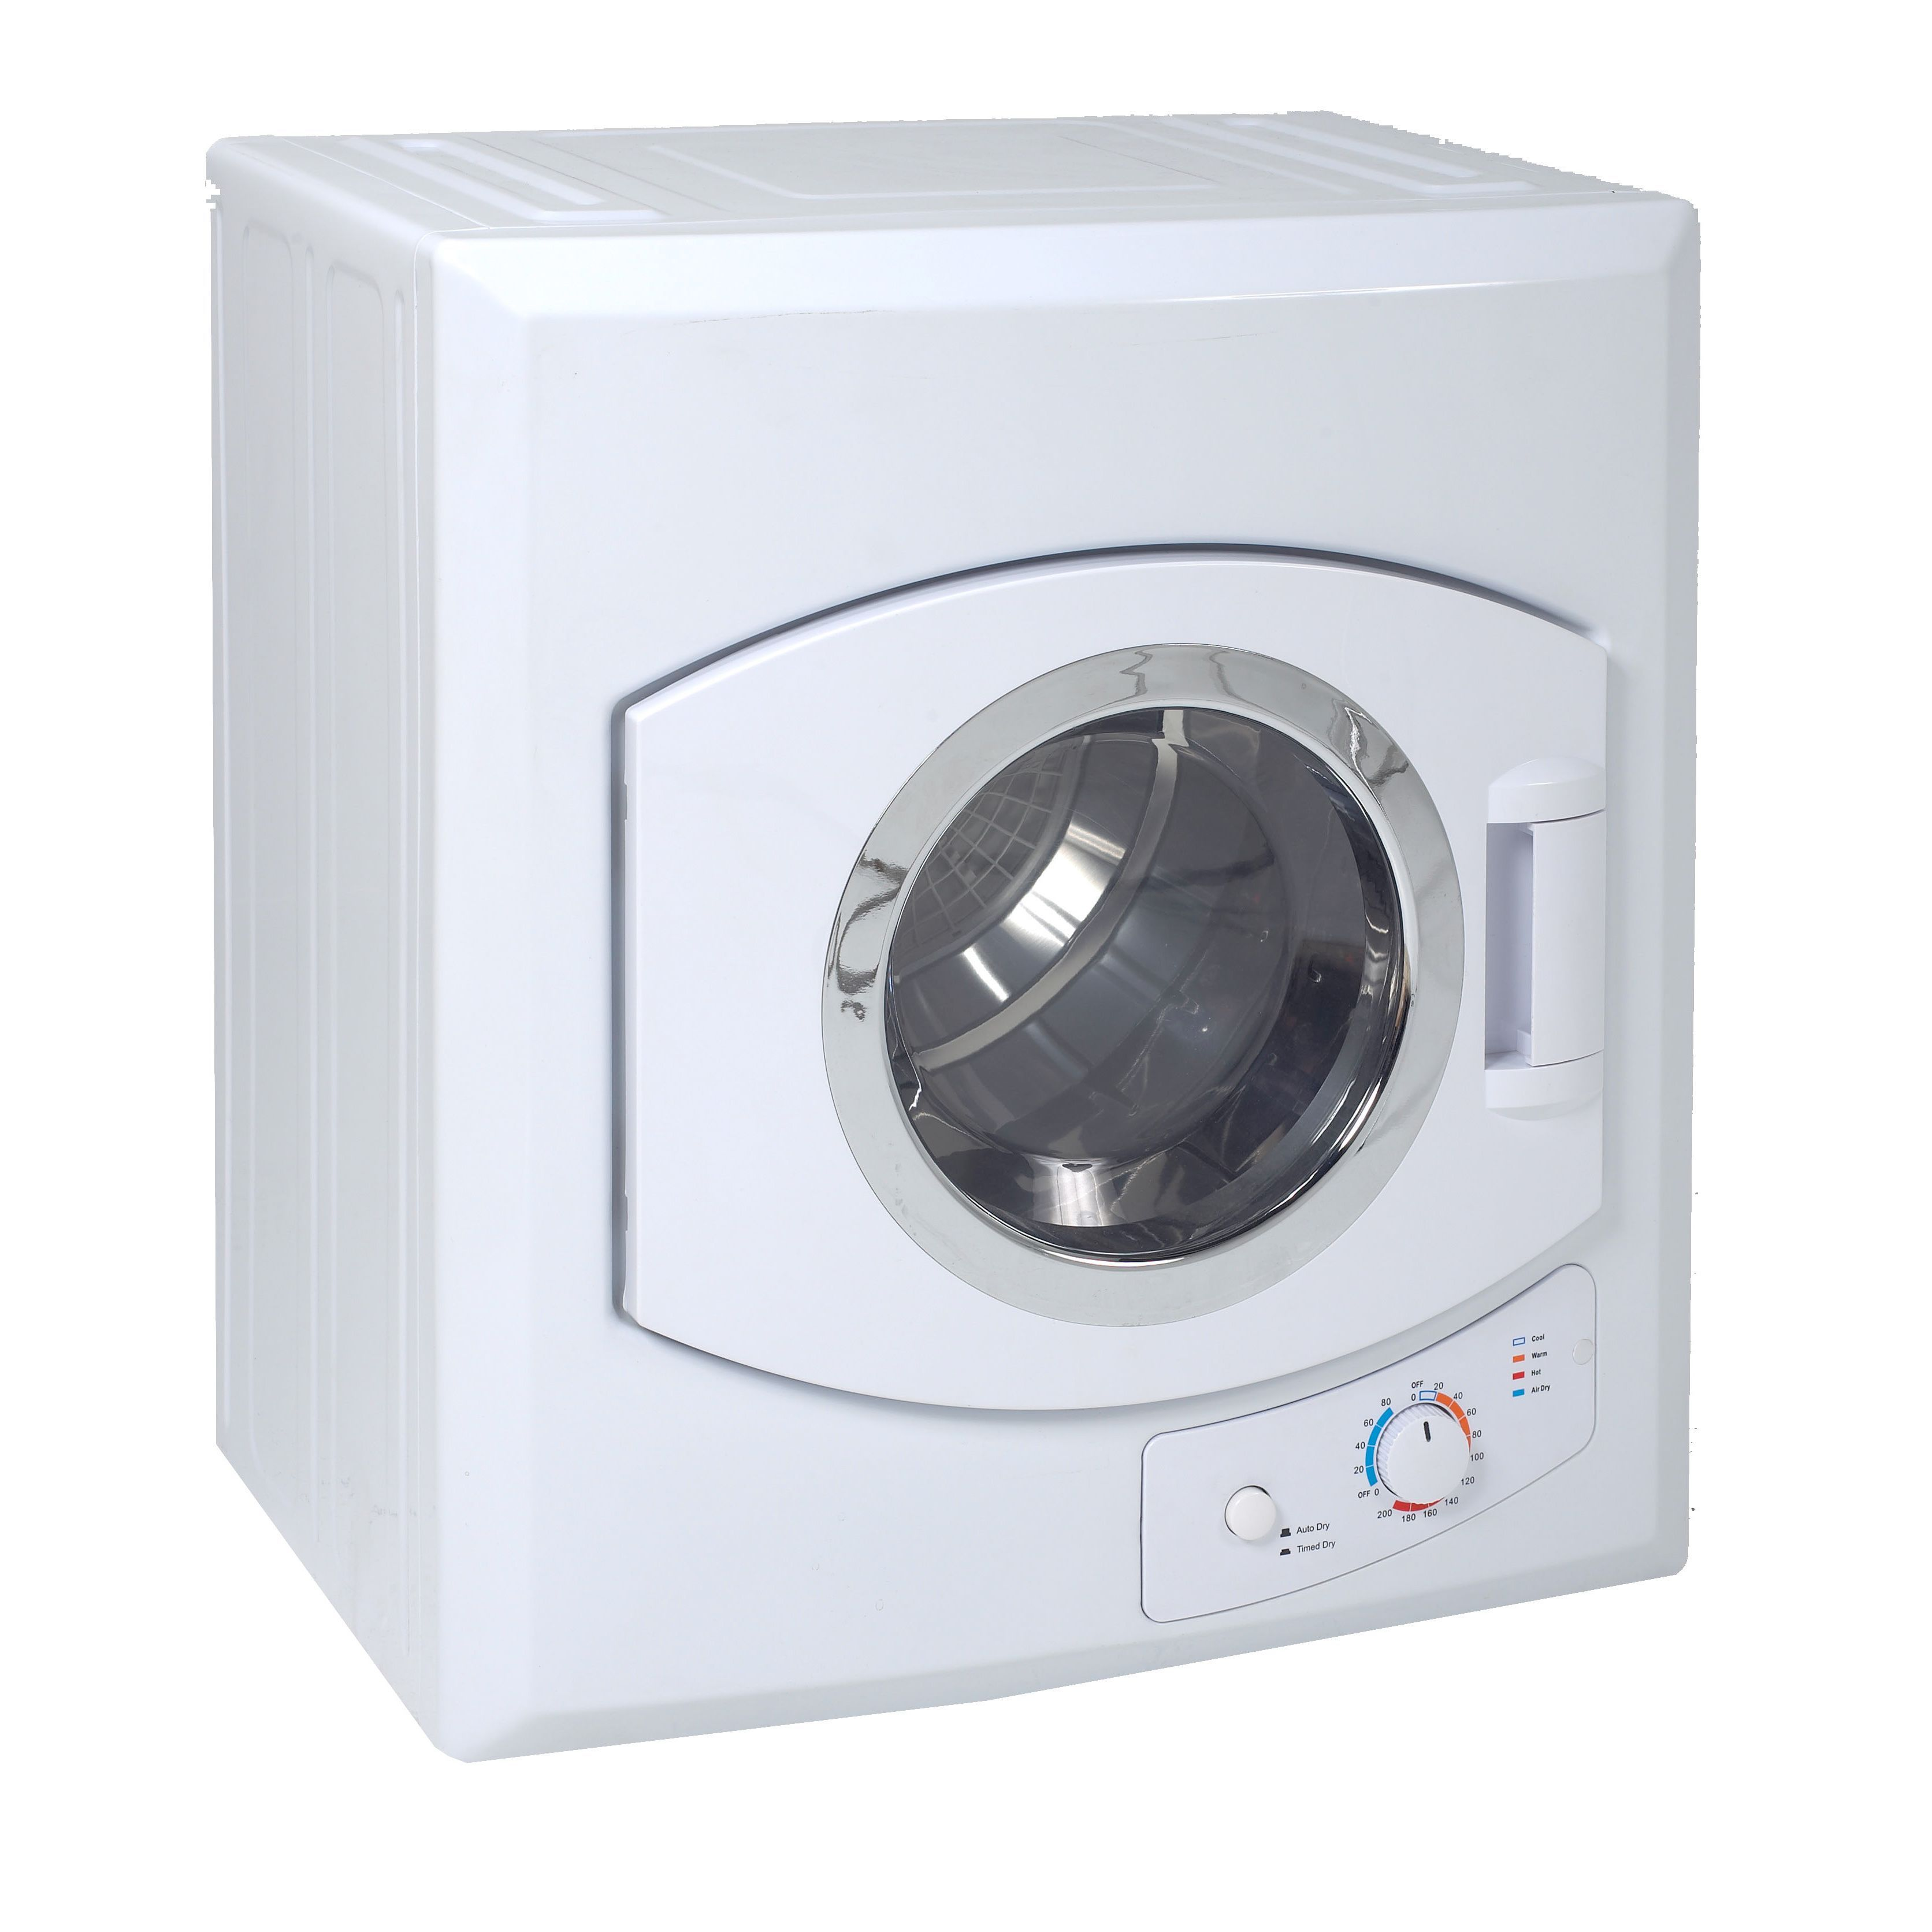 this modern automatic clothes dryer by avanti features a compact